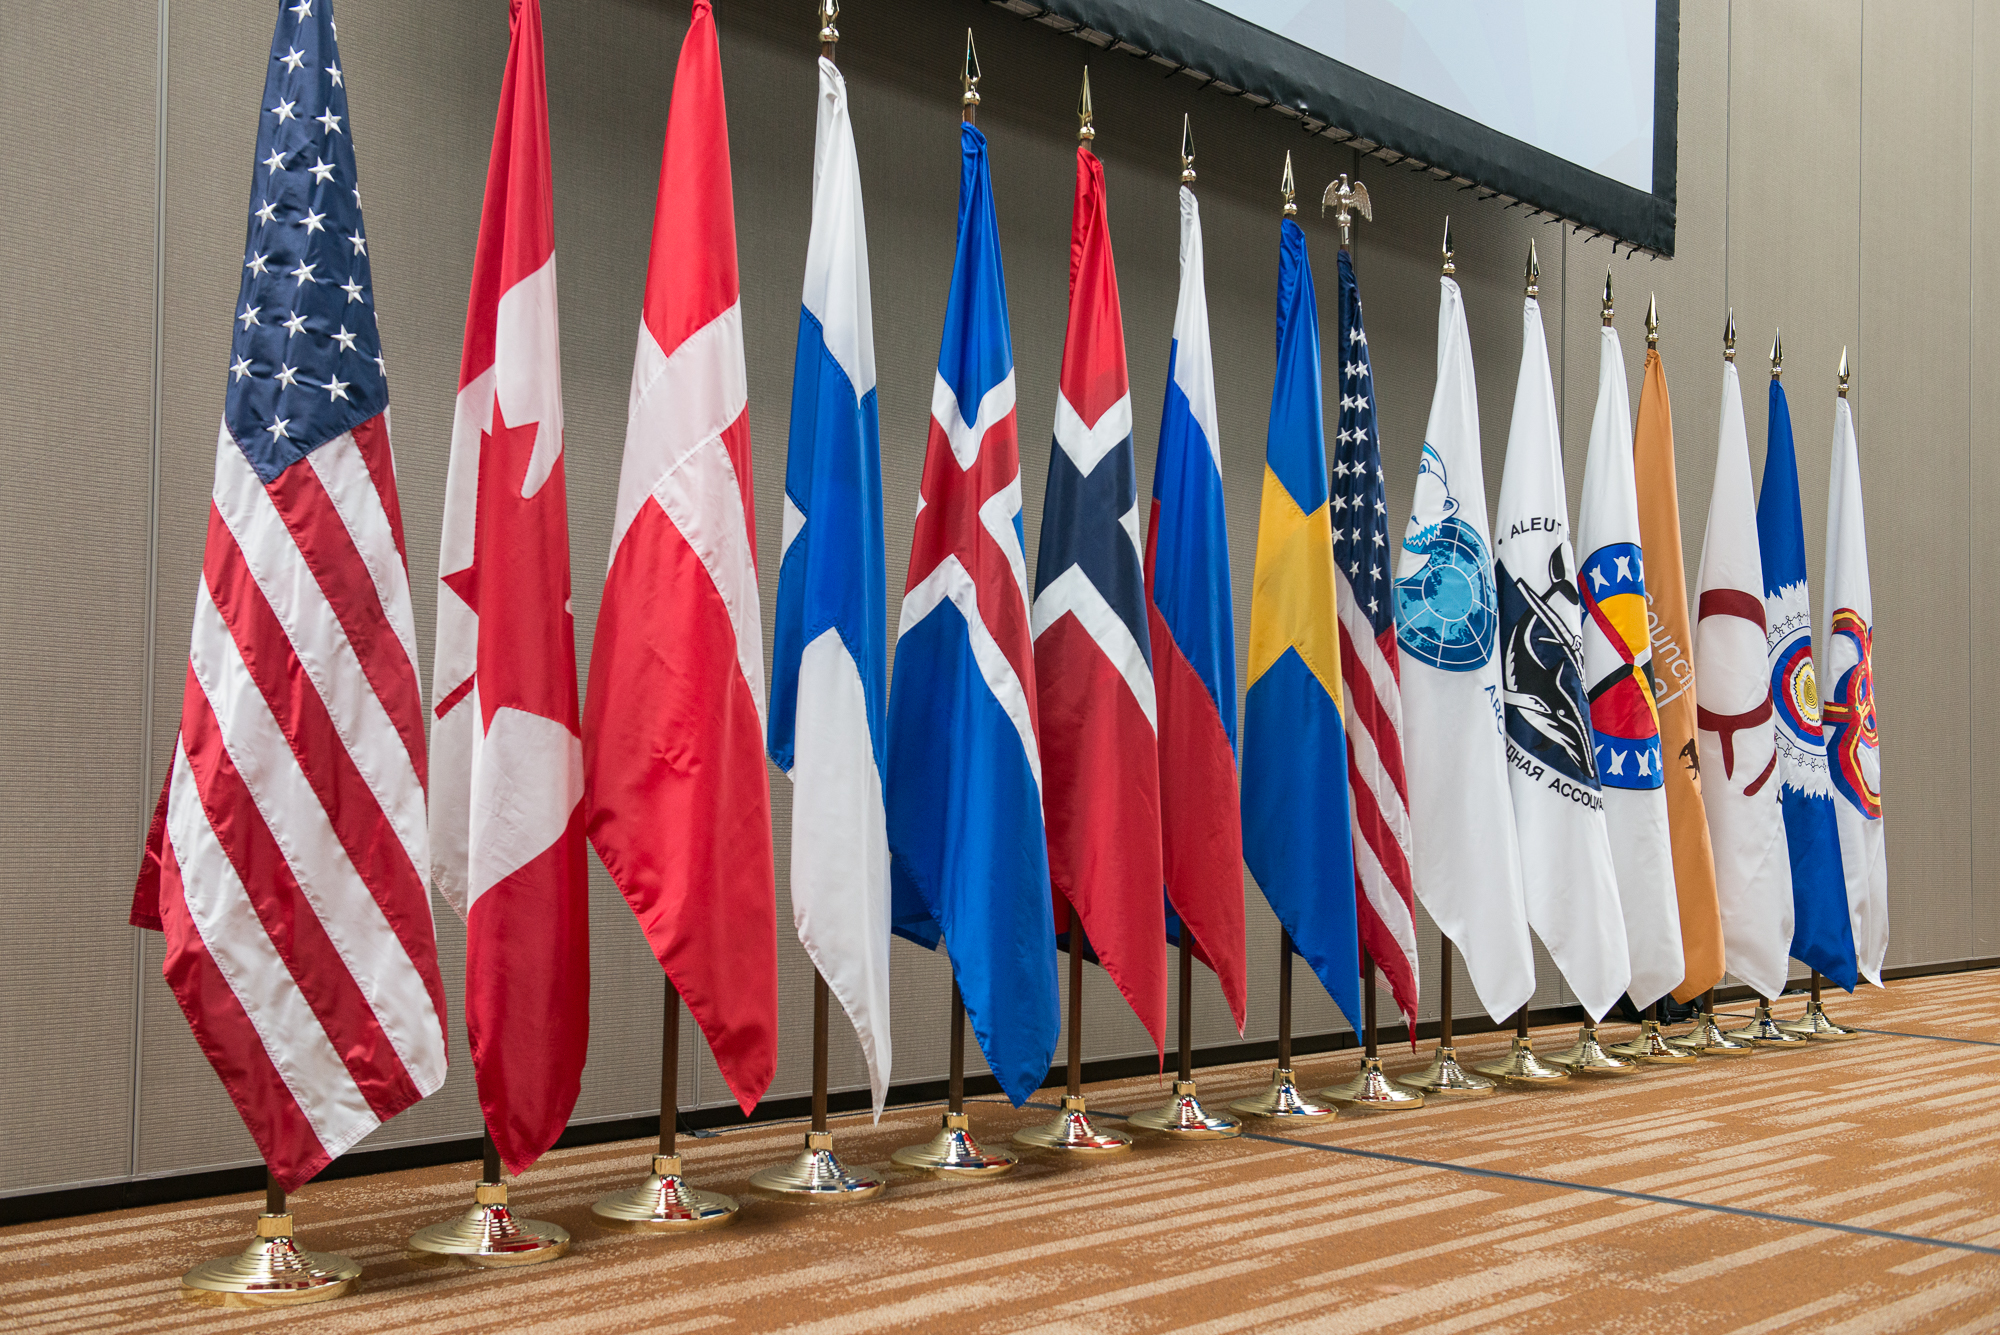 Continued disagreements over climate change appear likely to kill an Arctic Council joint declaration